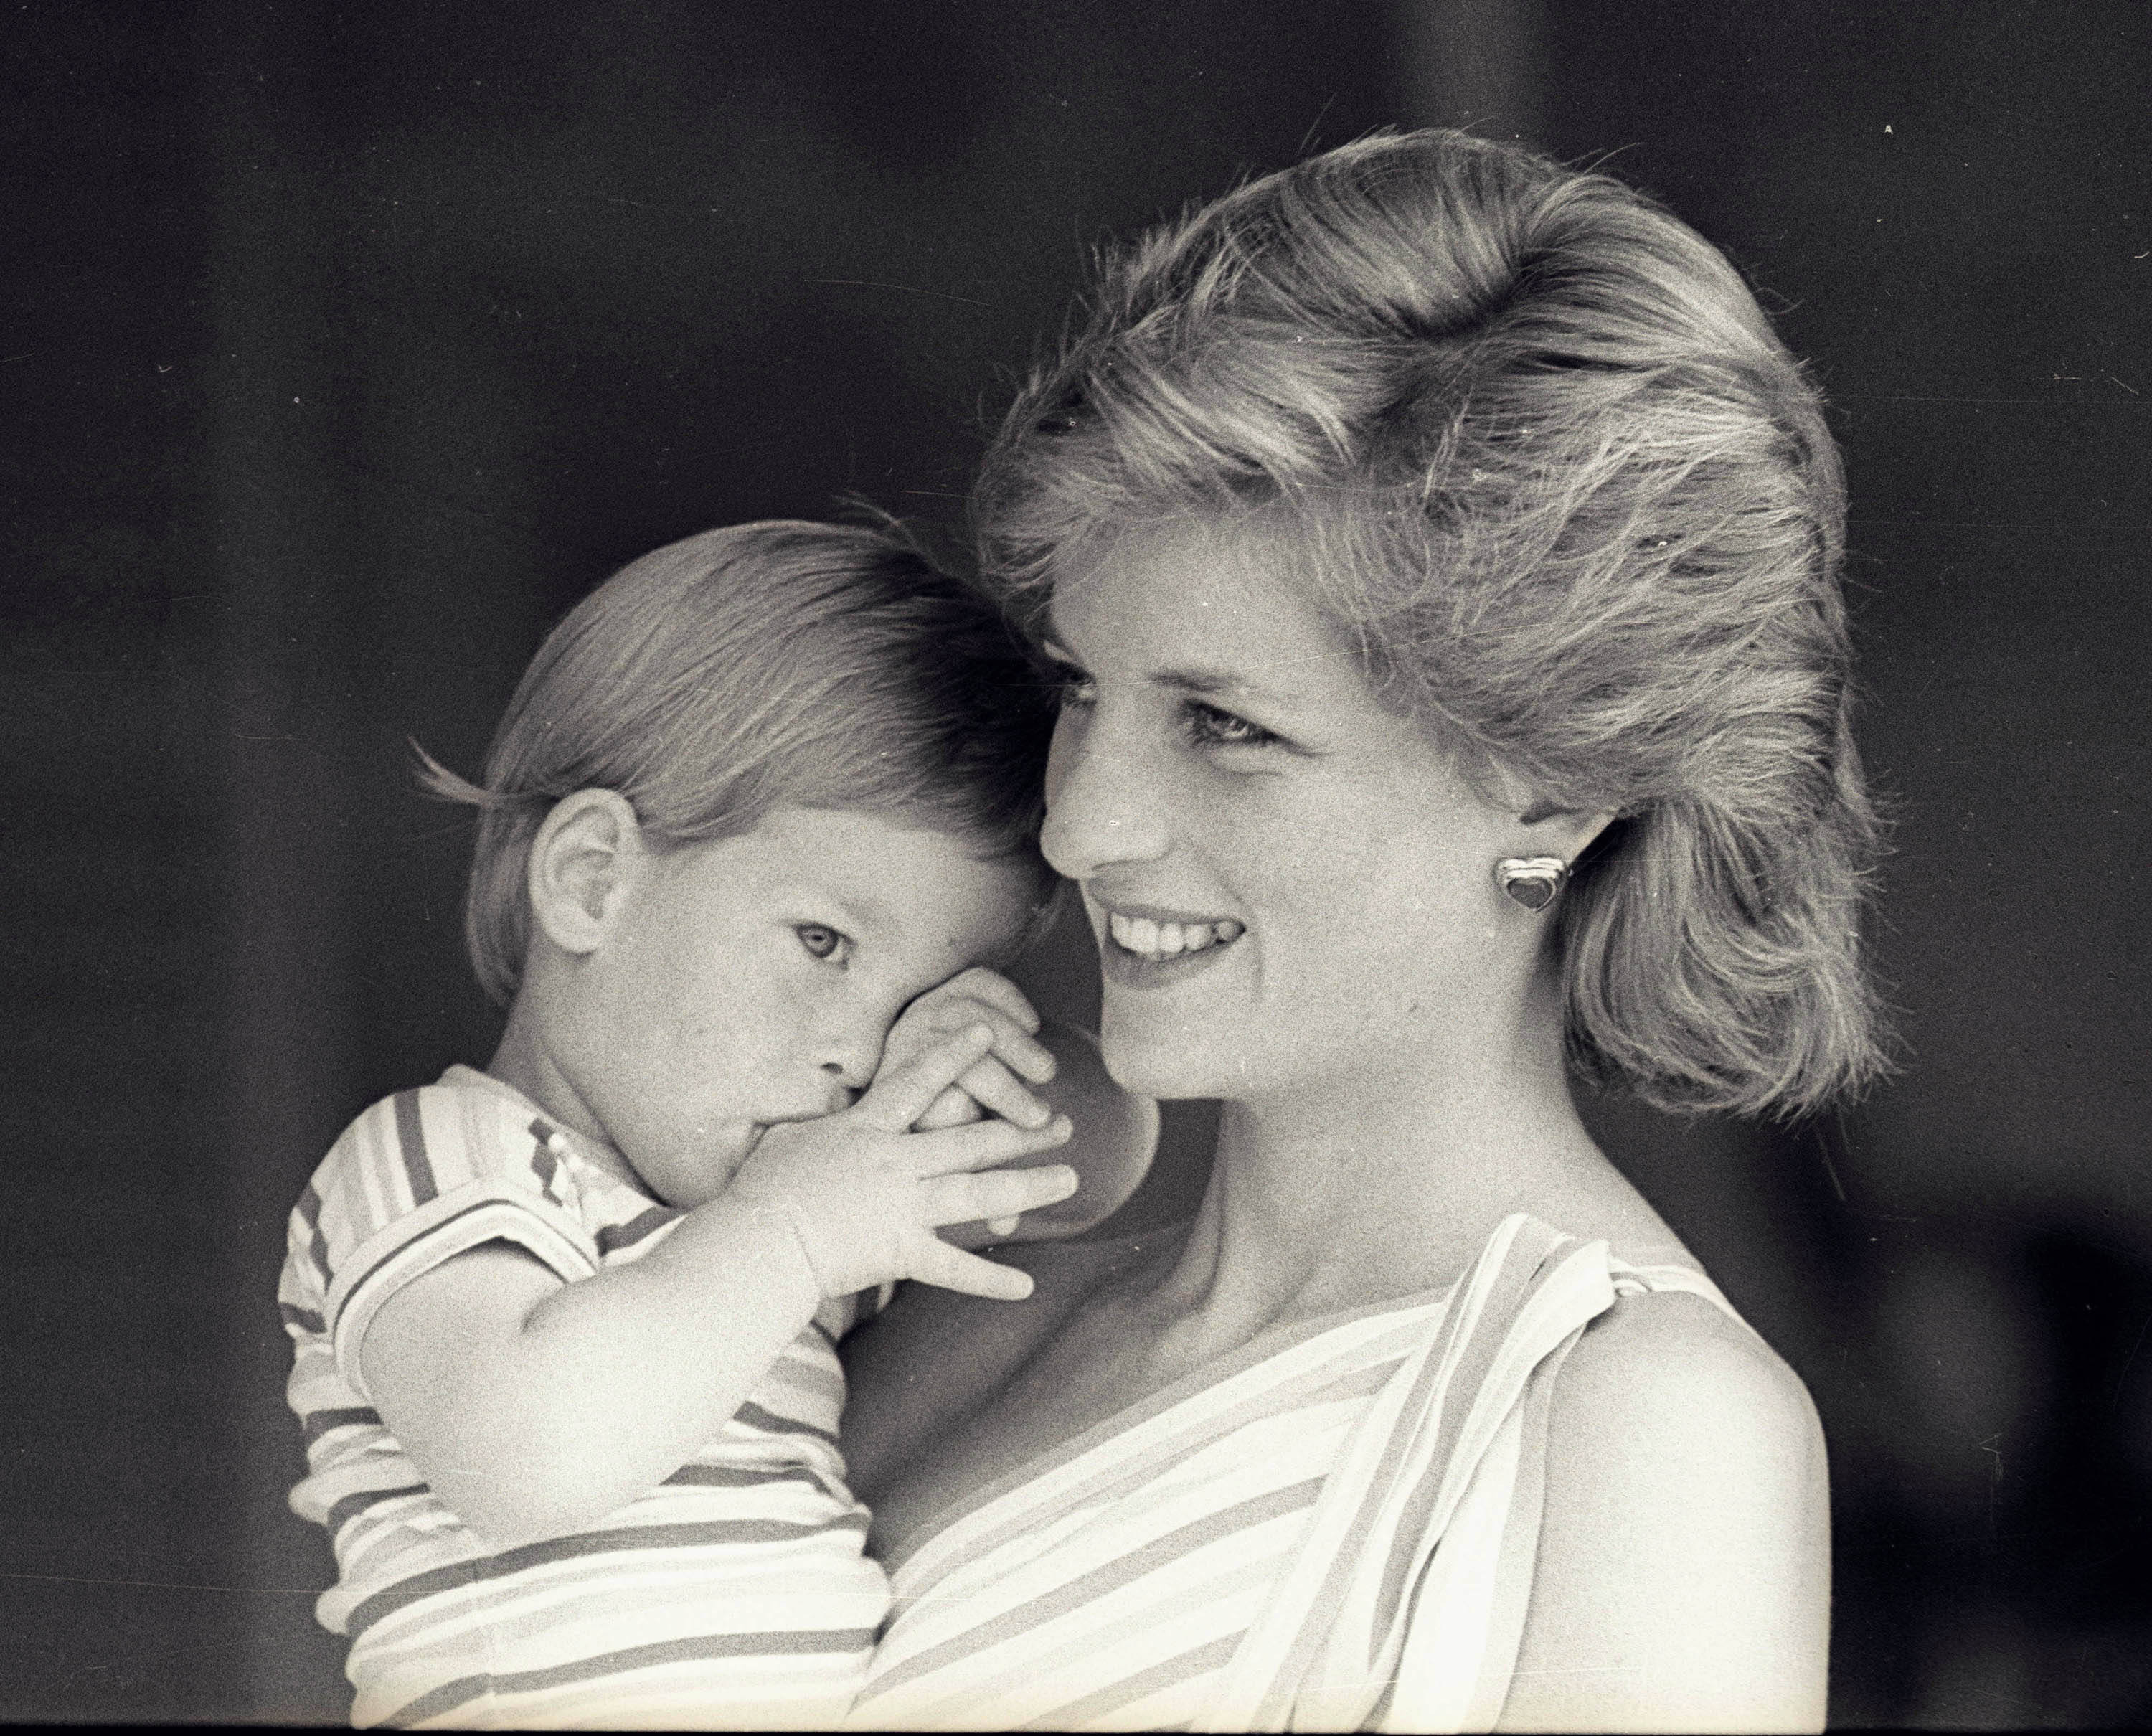 Prince Harry tries to hide behind his mother Princess Diana at Marivent Palace in Spain on Aug. 9, 1988. The family was visiting King Juan Carlos and Queen Sofia. Photo by Hugh Peralta/Reuters